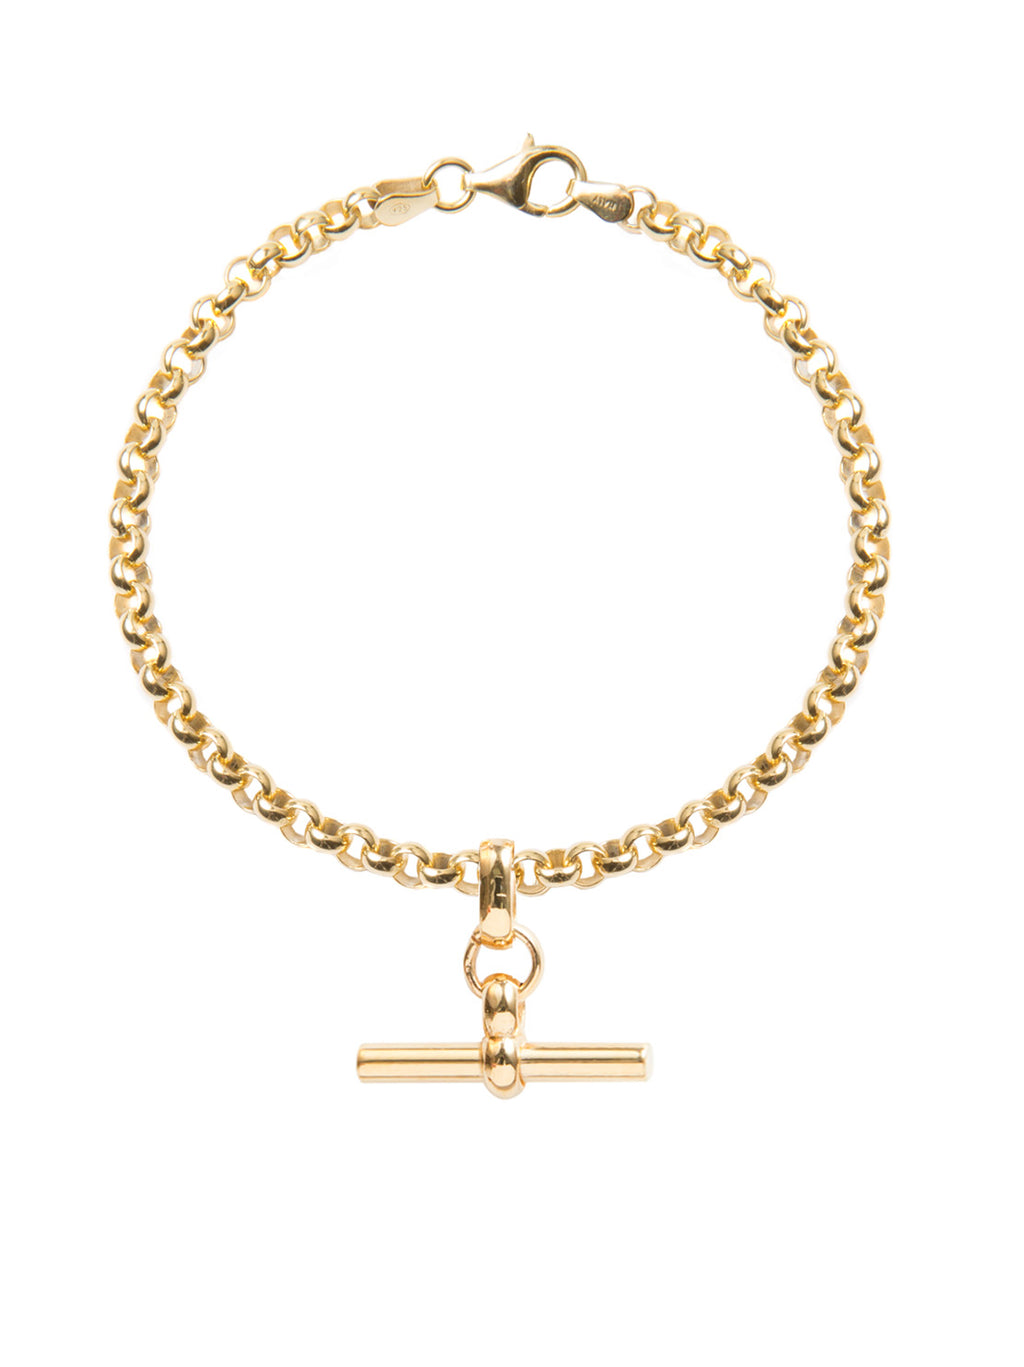 TILLY SVEAAS BELCHER BRACELET WITH T BAR